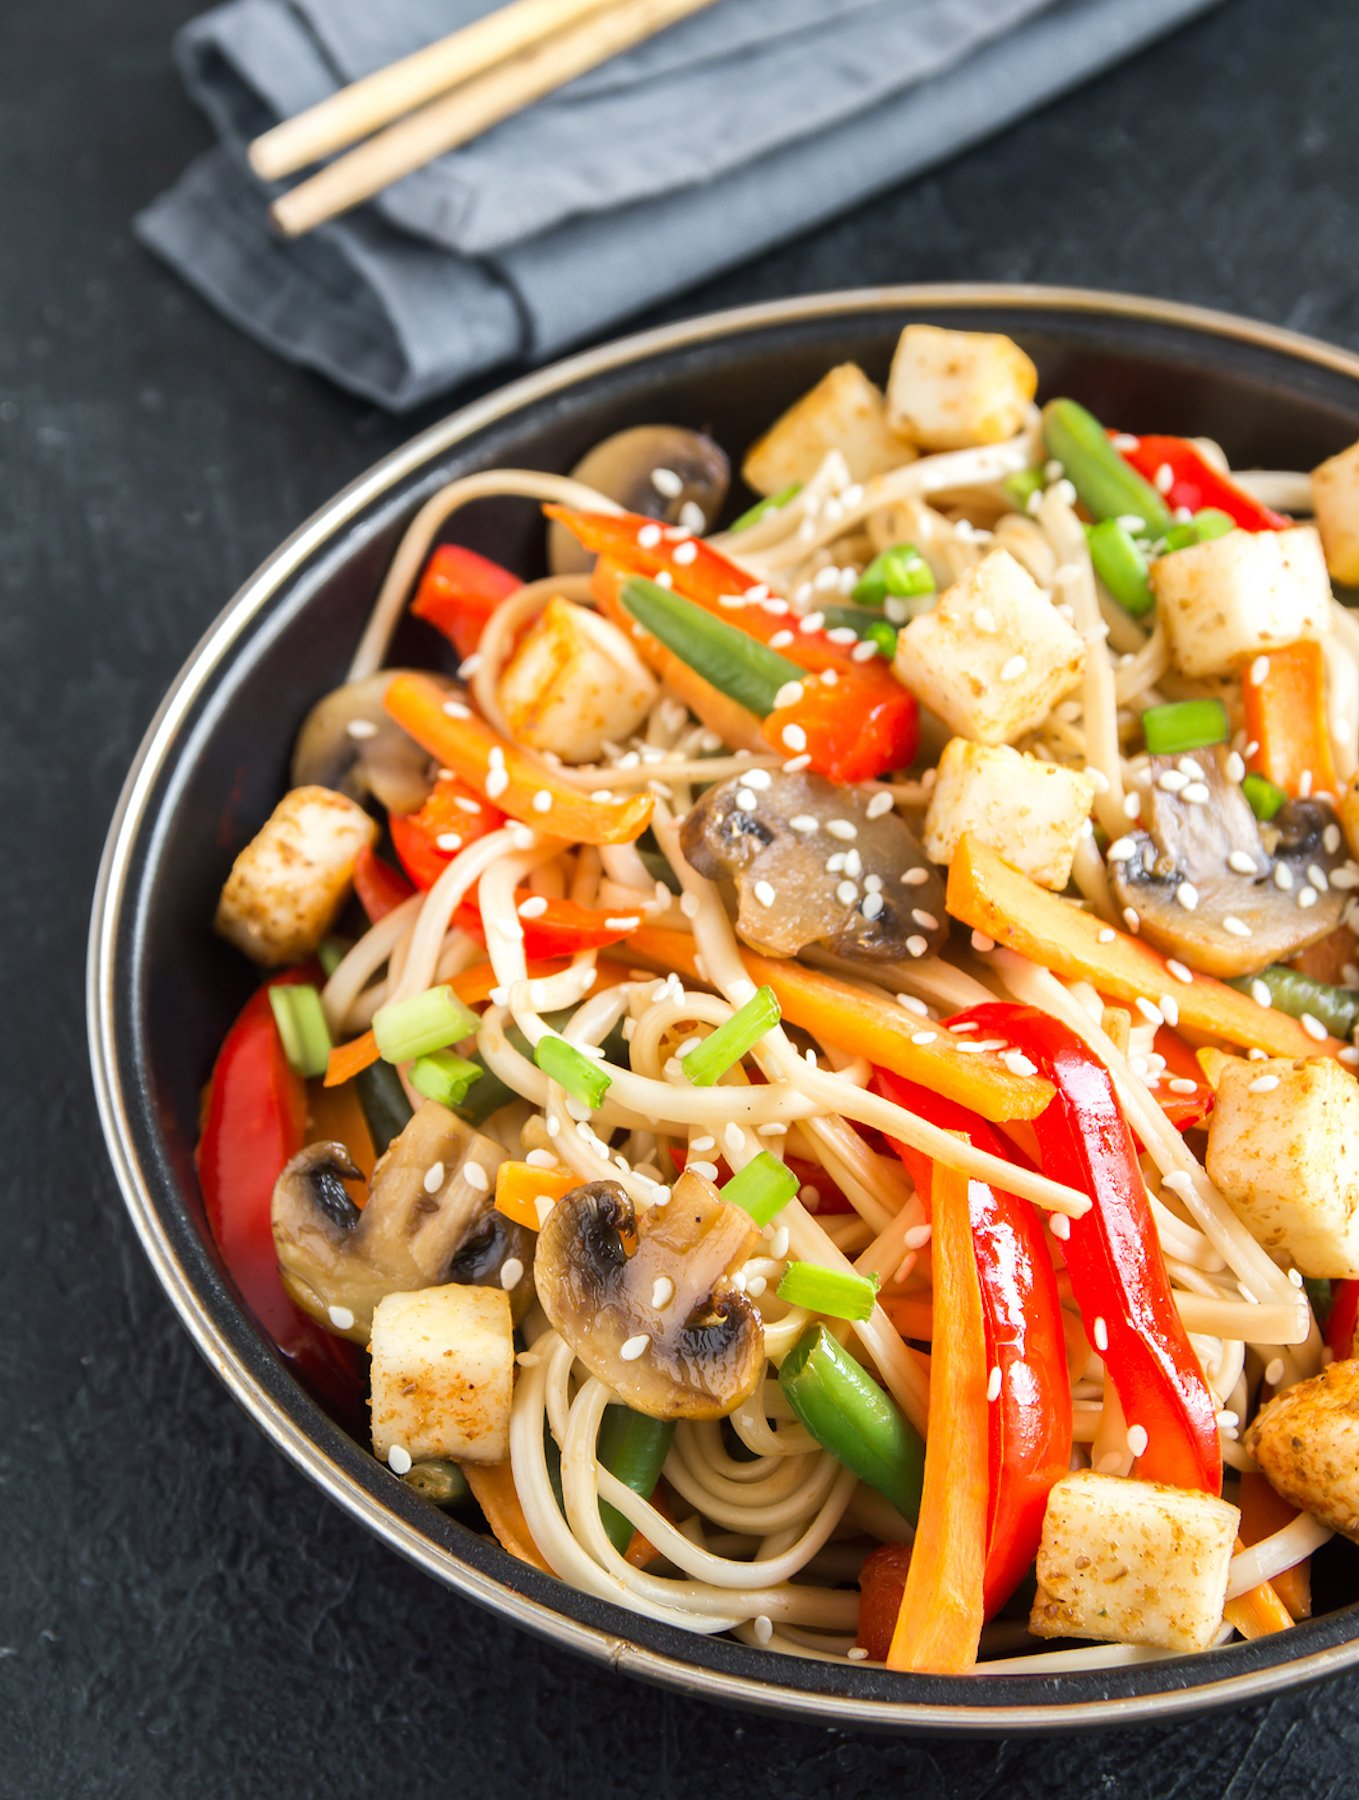 Asian vegetable and noodle stir-fry